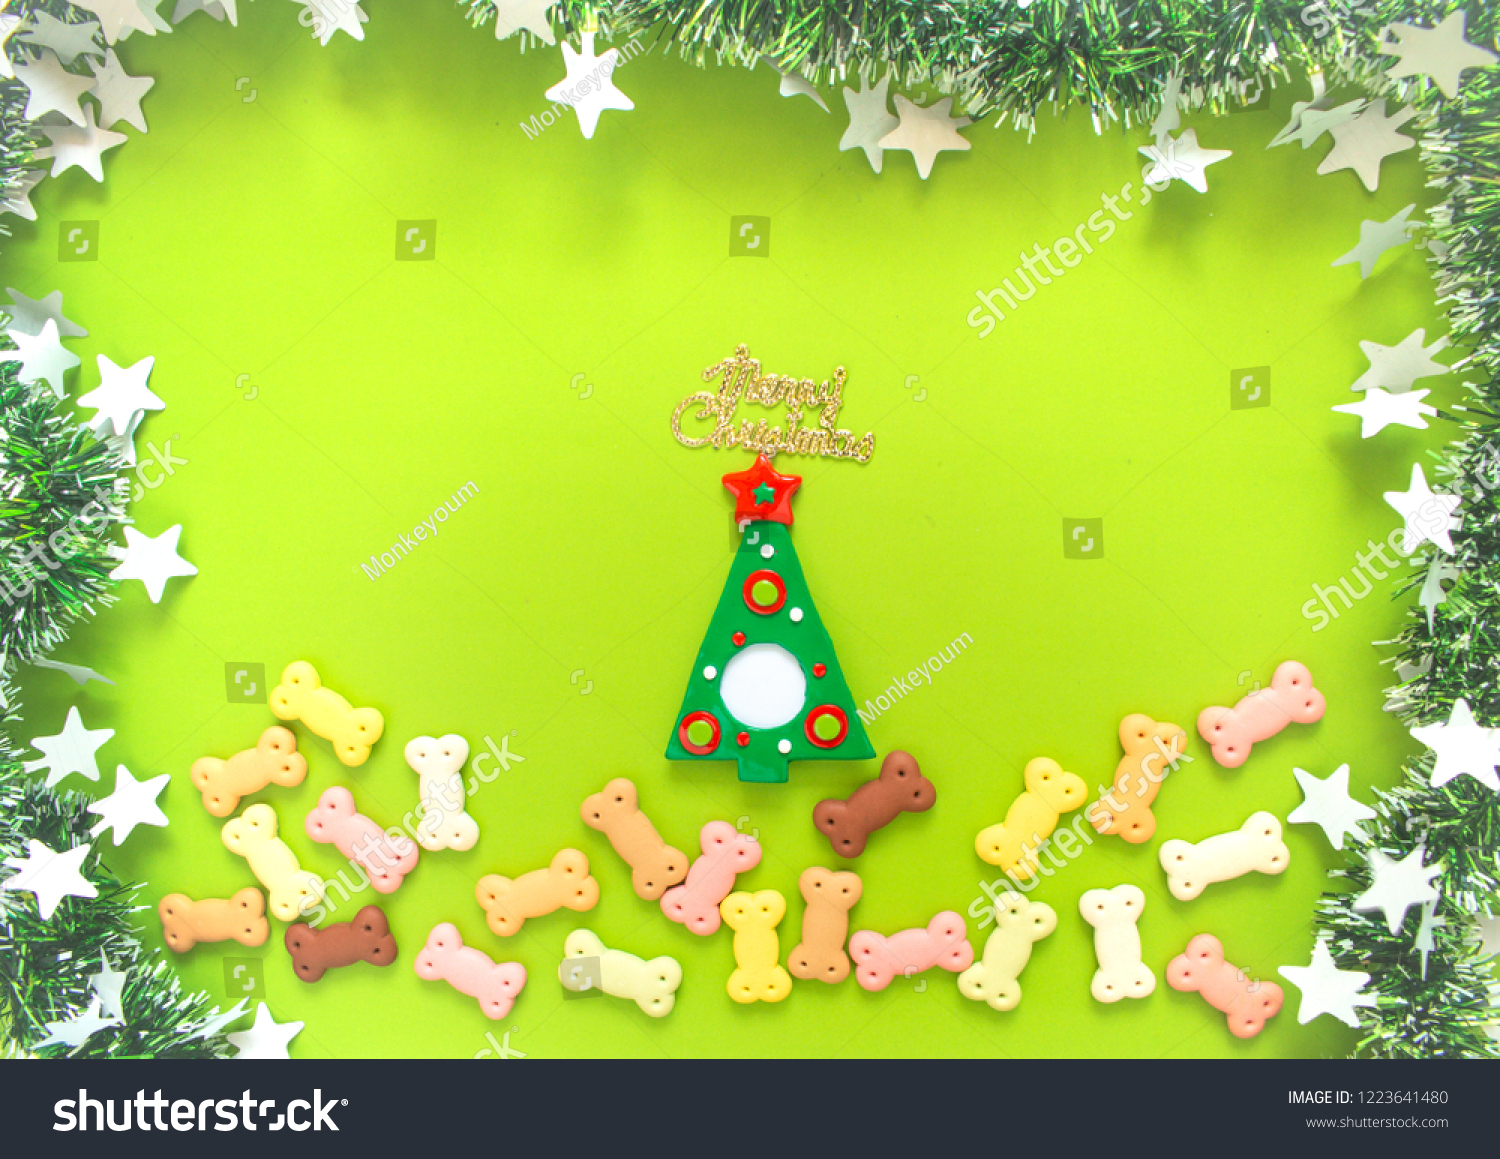 dog biscuits dog snack or dog chew in christmas and new year themes on green